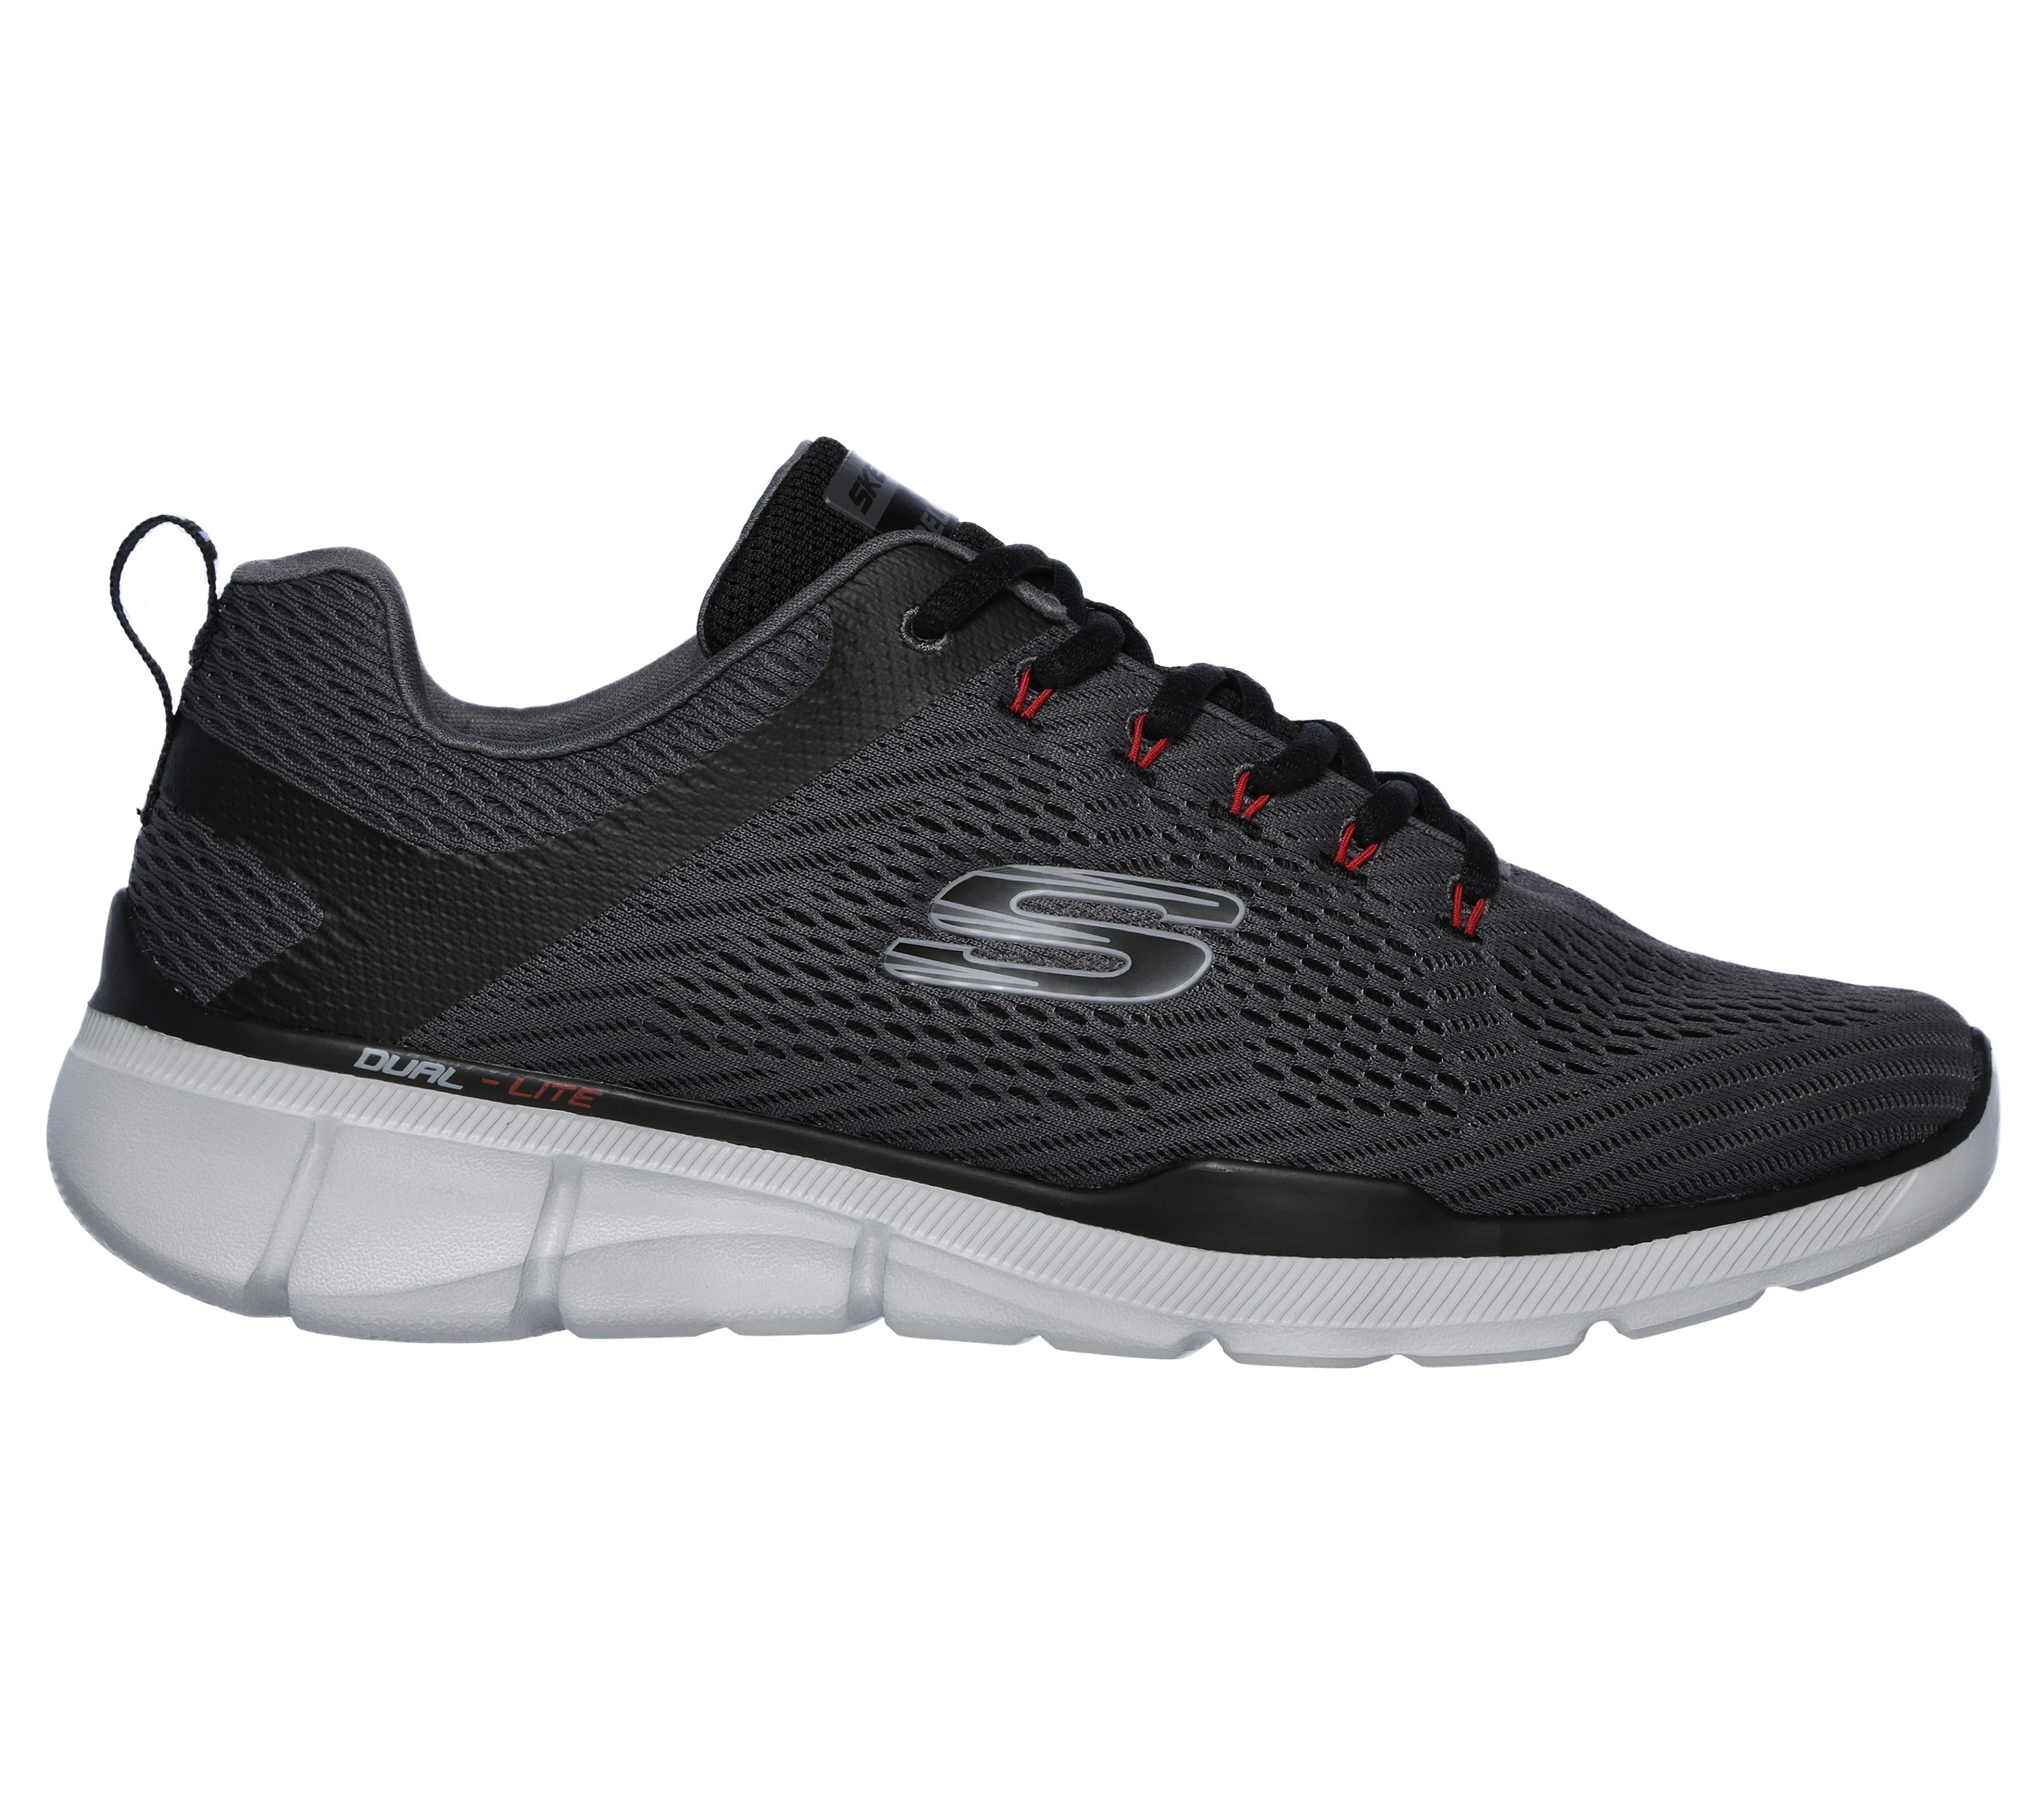 Soledad Limpia el cuarto nuez  Shop the Relaxed Fit: Equalizer 3.0 | SKECHERS